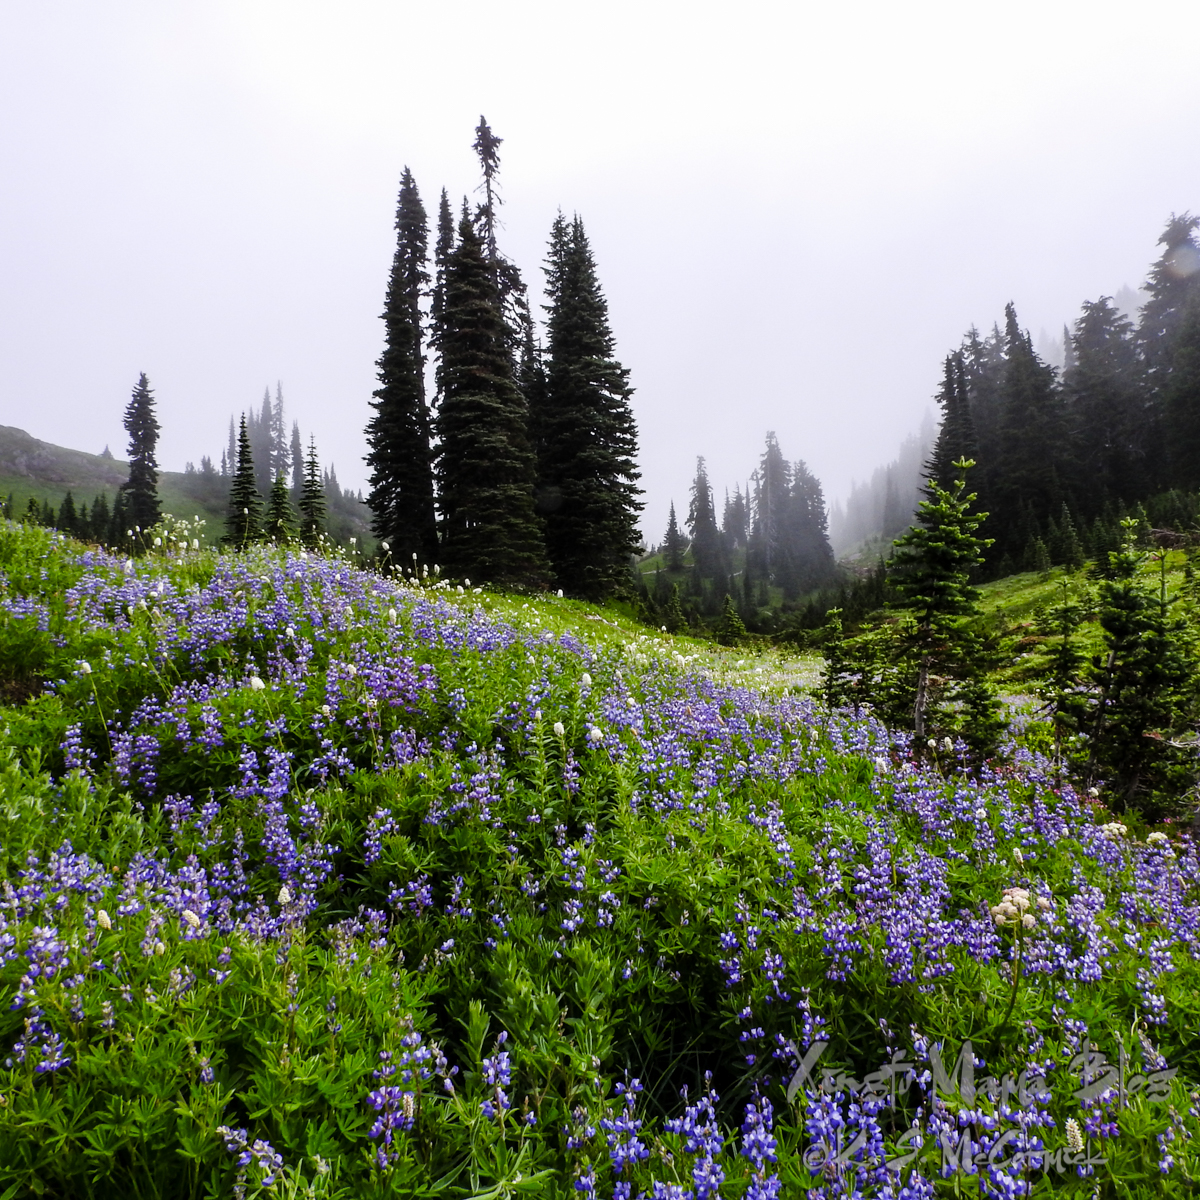 Trees in mist in the background, the foreground is an alpine meadow full of blue lupines.